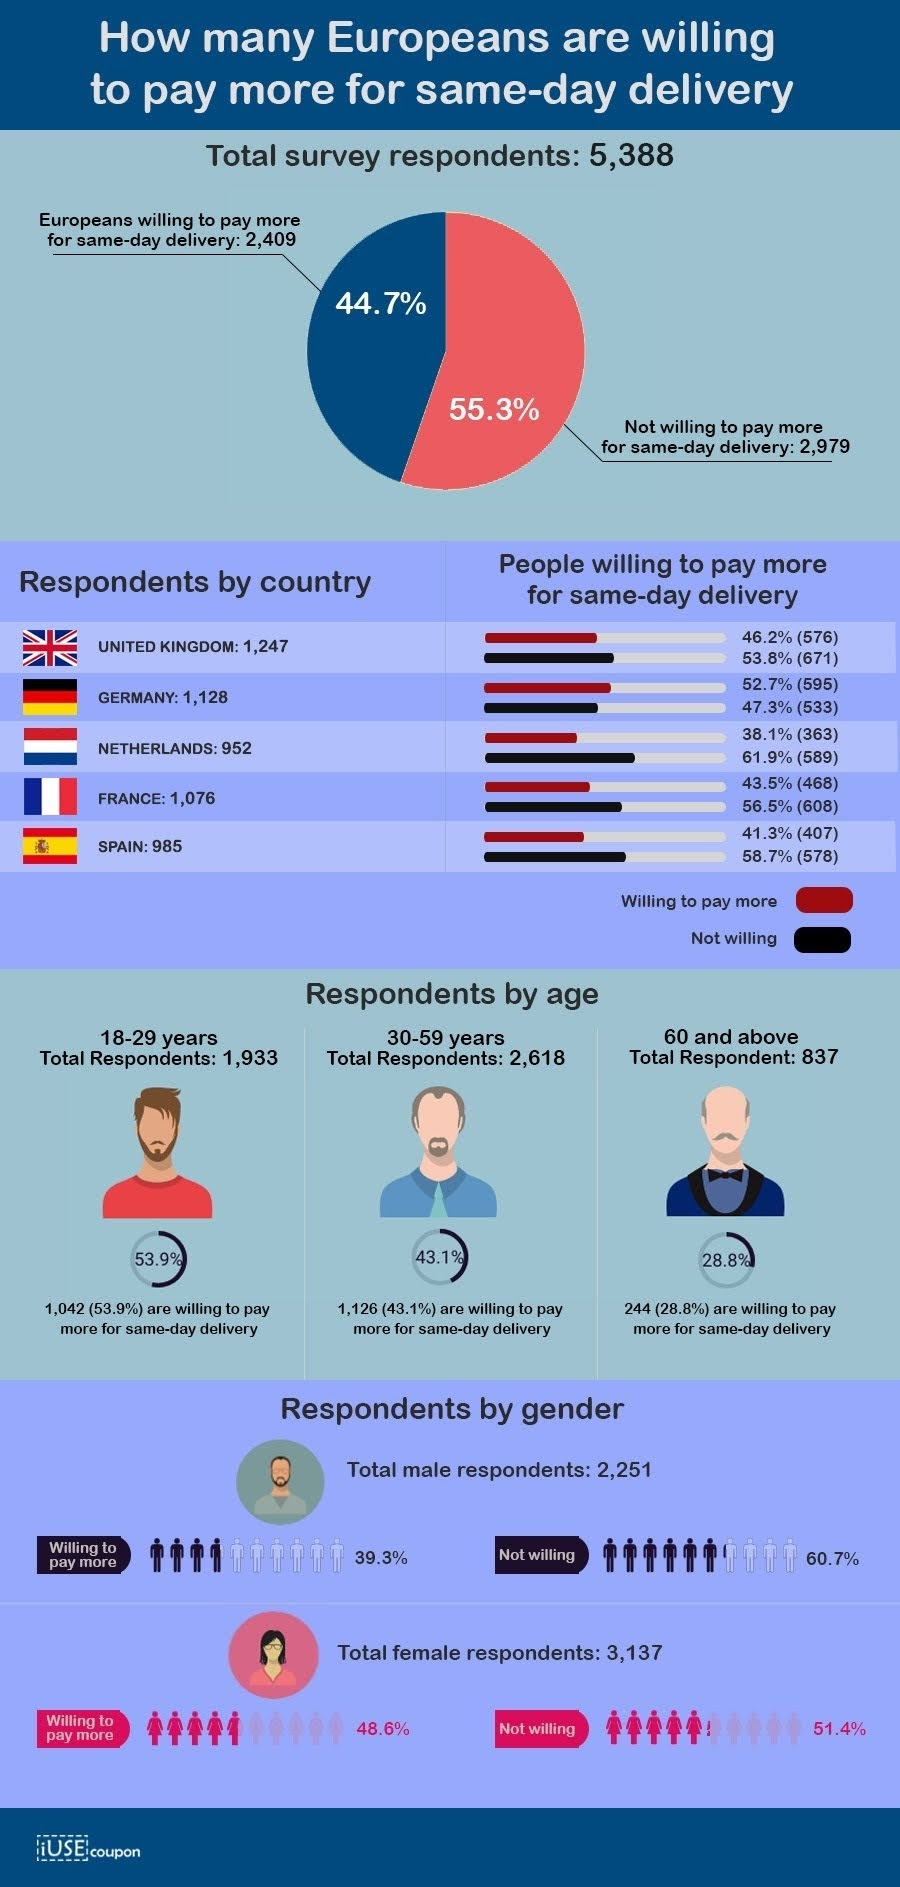 How Many People Are Willing to Pay More for Same-day Delivery in Europe #infographic